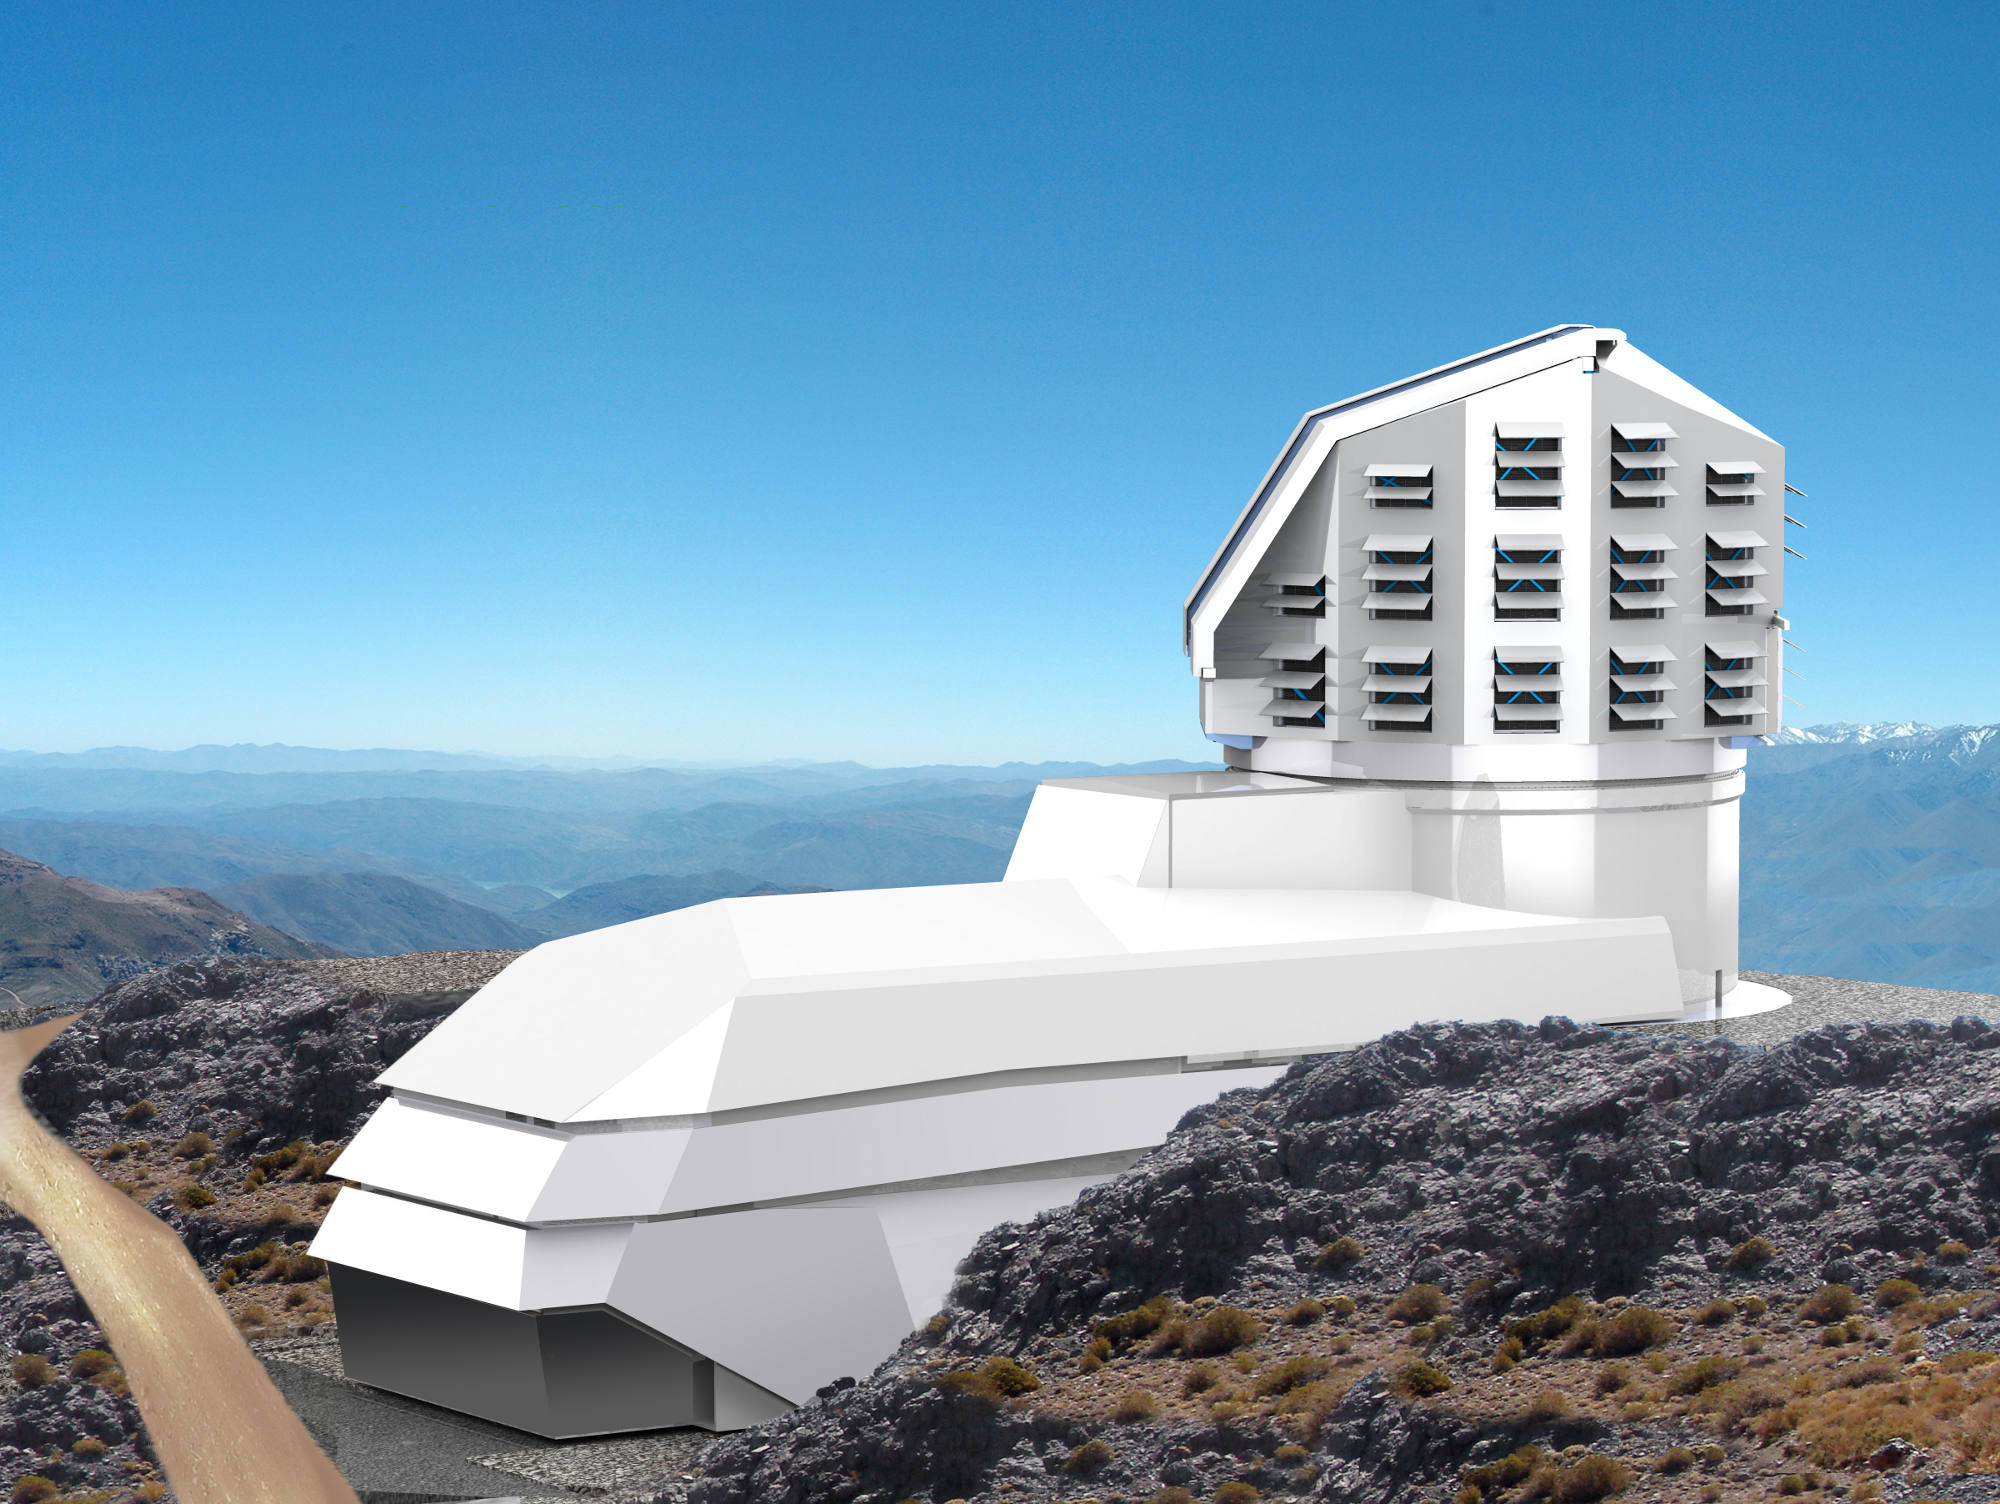 Schematic of the telescope. Credit: LSST Corporation